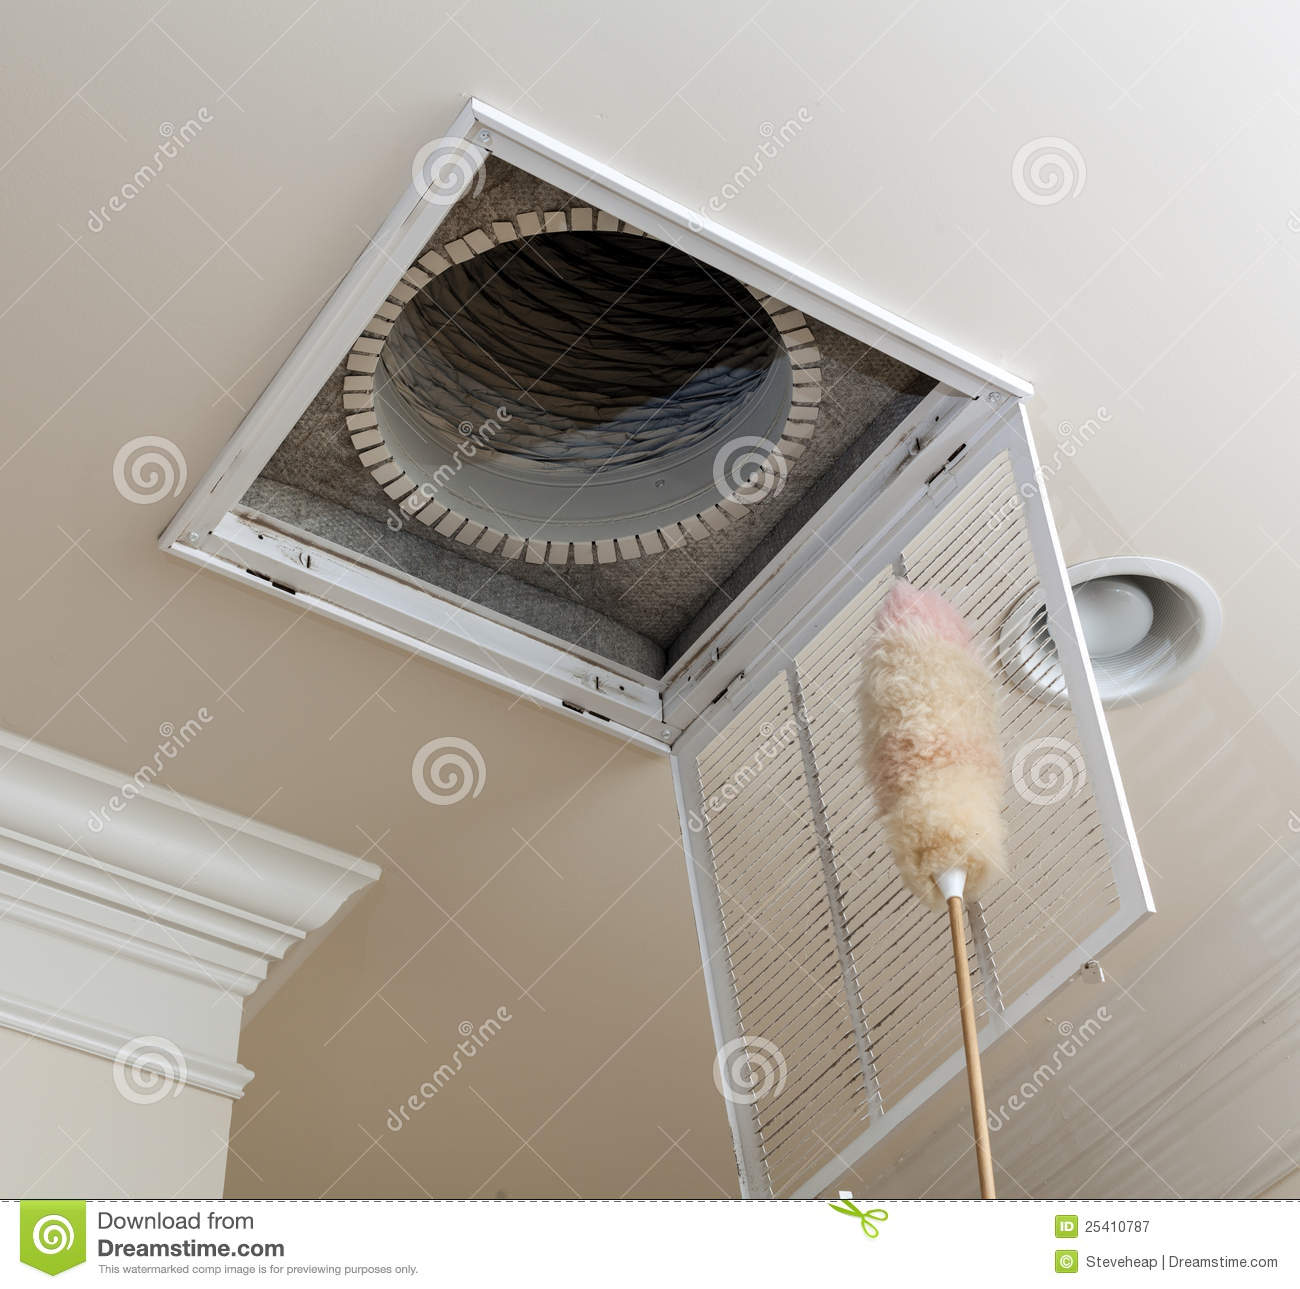 Air Conditioner Air Cleaner : House cleaning services air vents in home